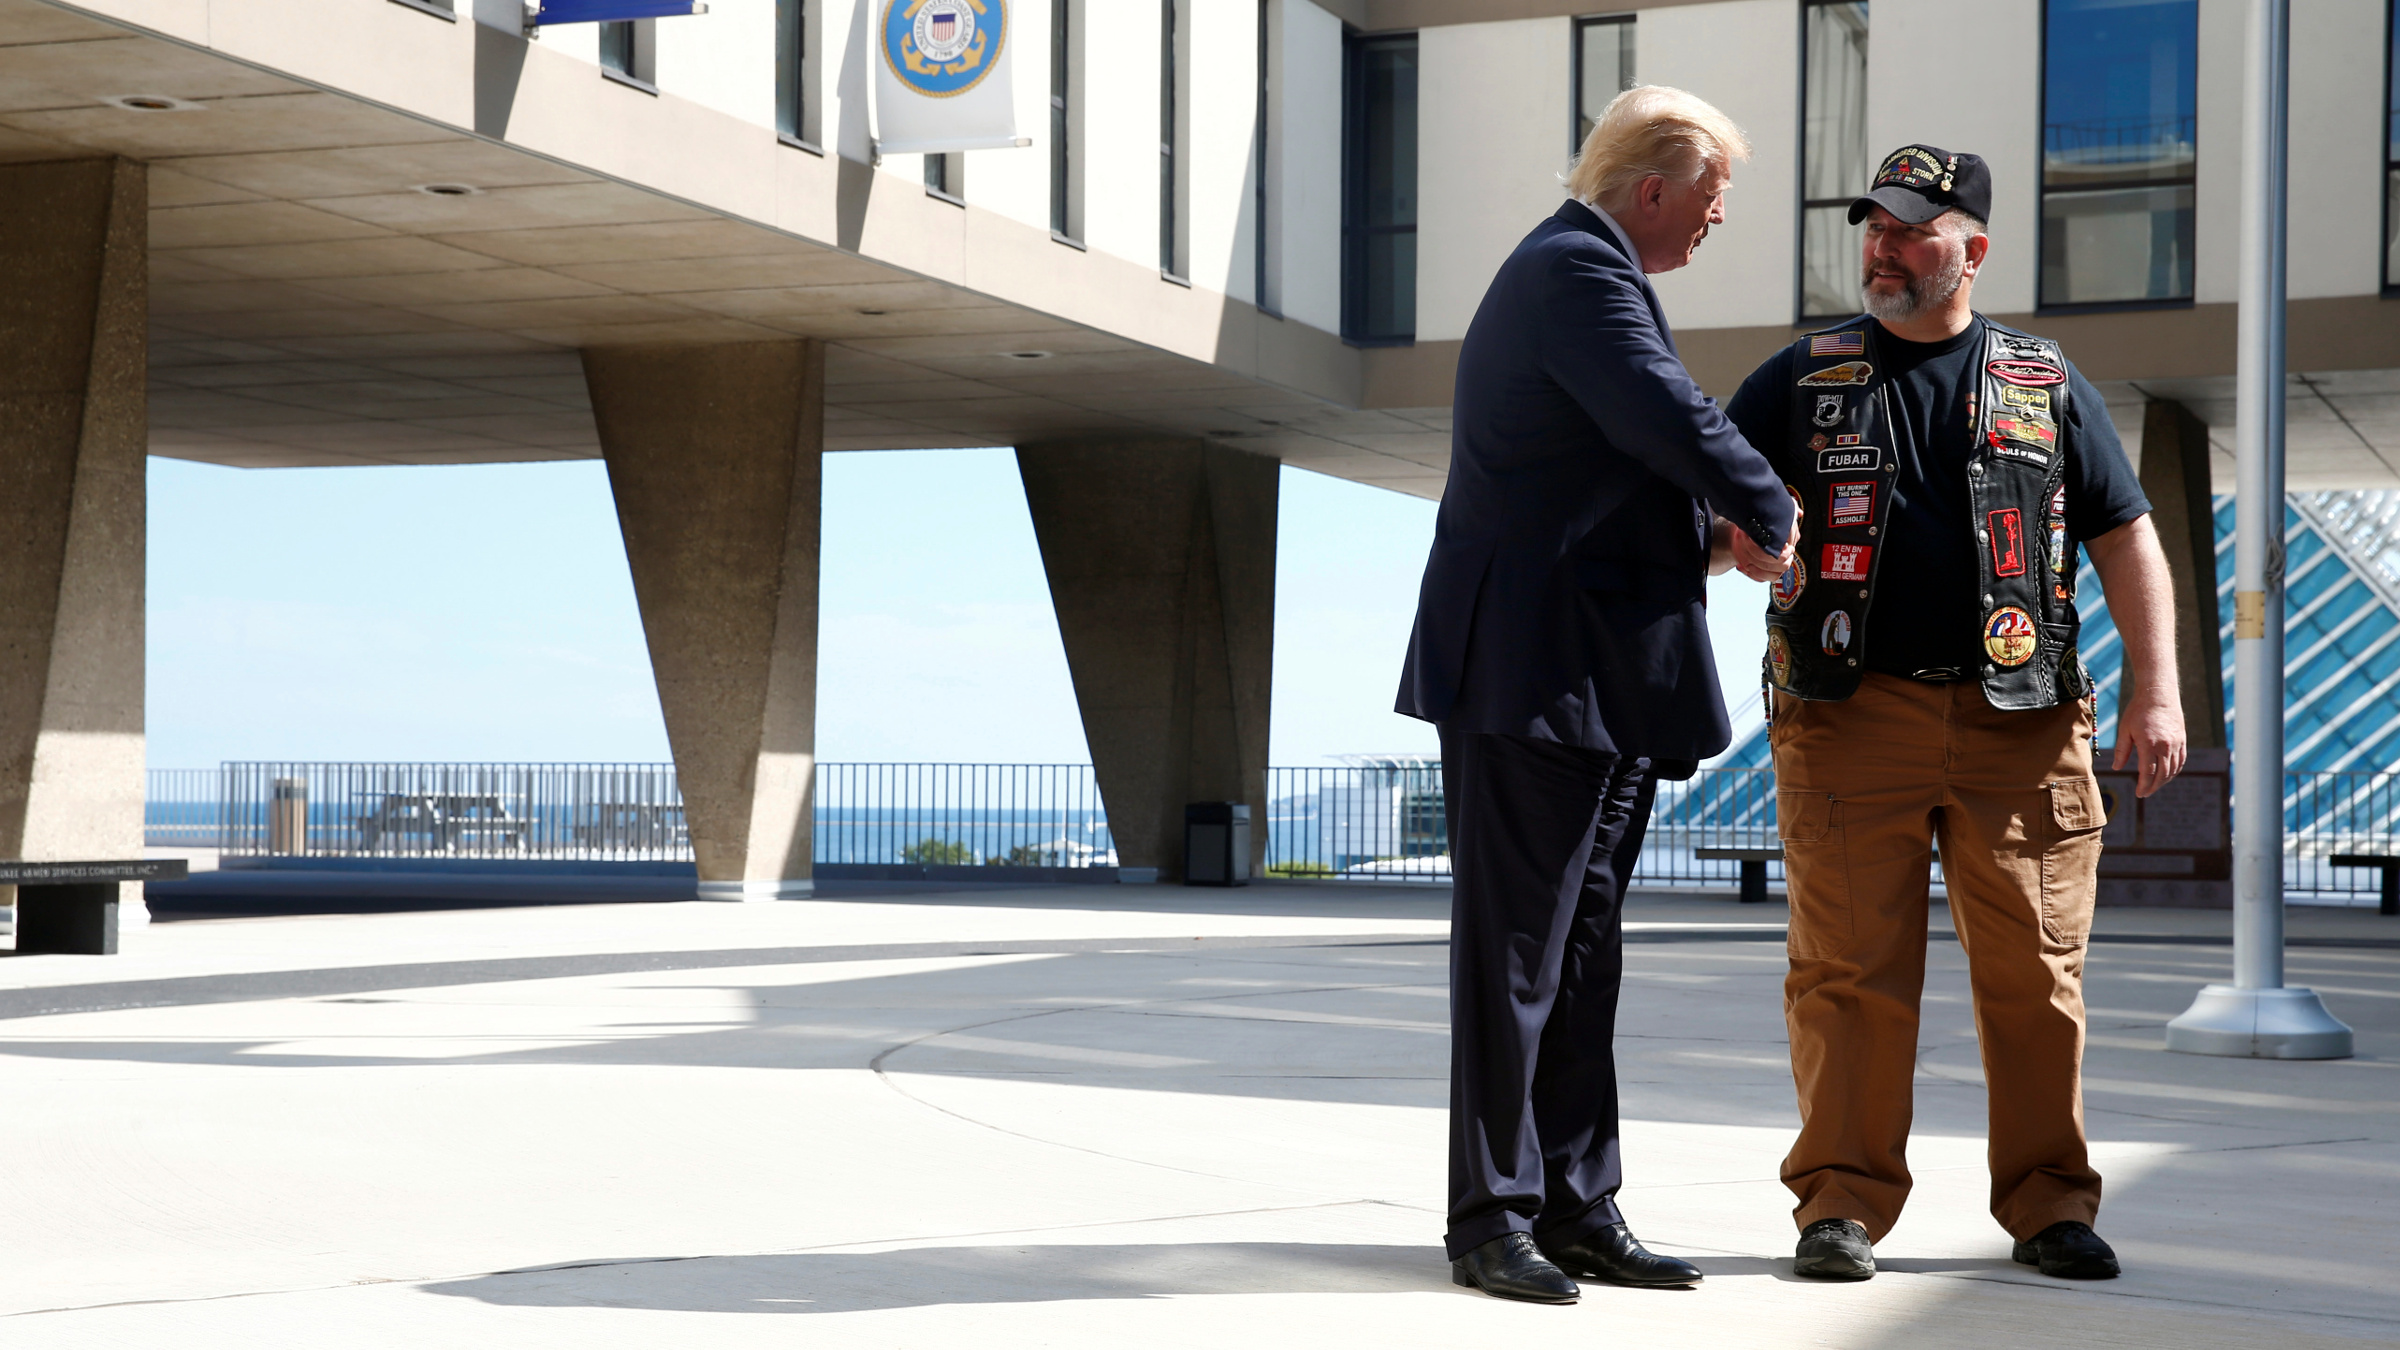 Republican U.S. presidential nominee Donald Trump visits the Milwaukee County War Memorial Center in Milwaukee, Wisconsin August 16, 2016.